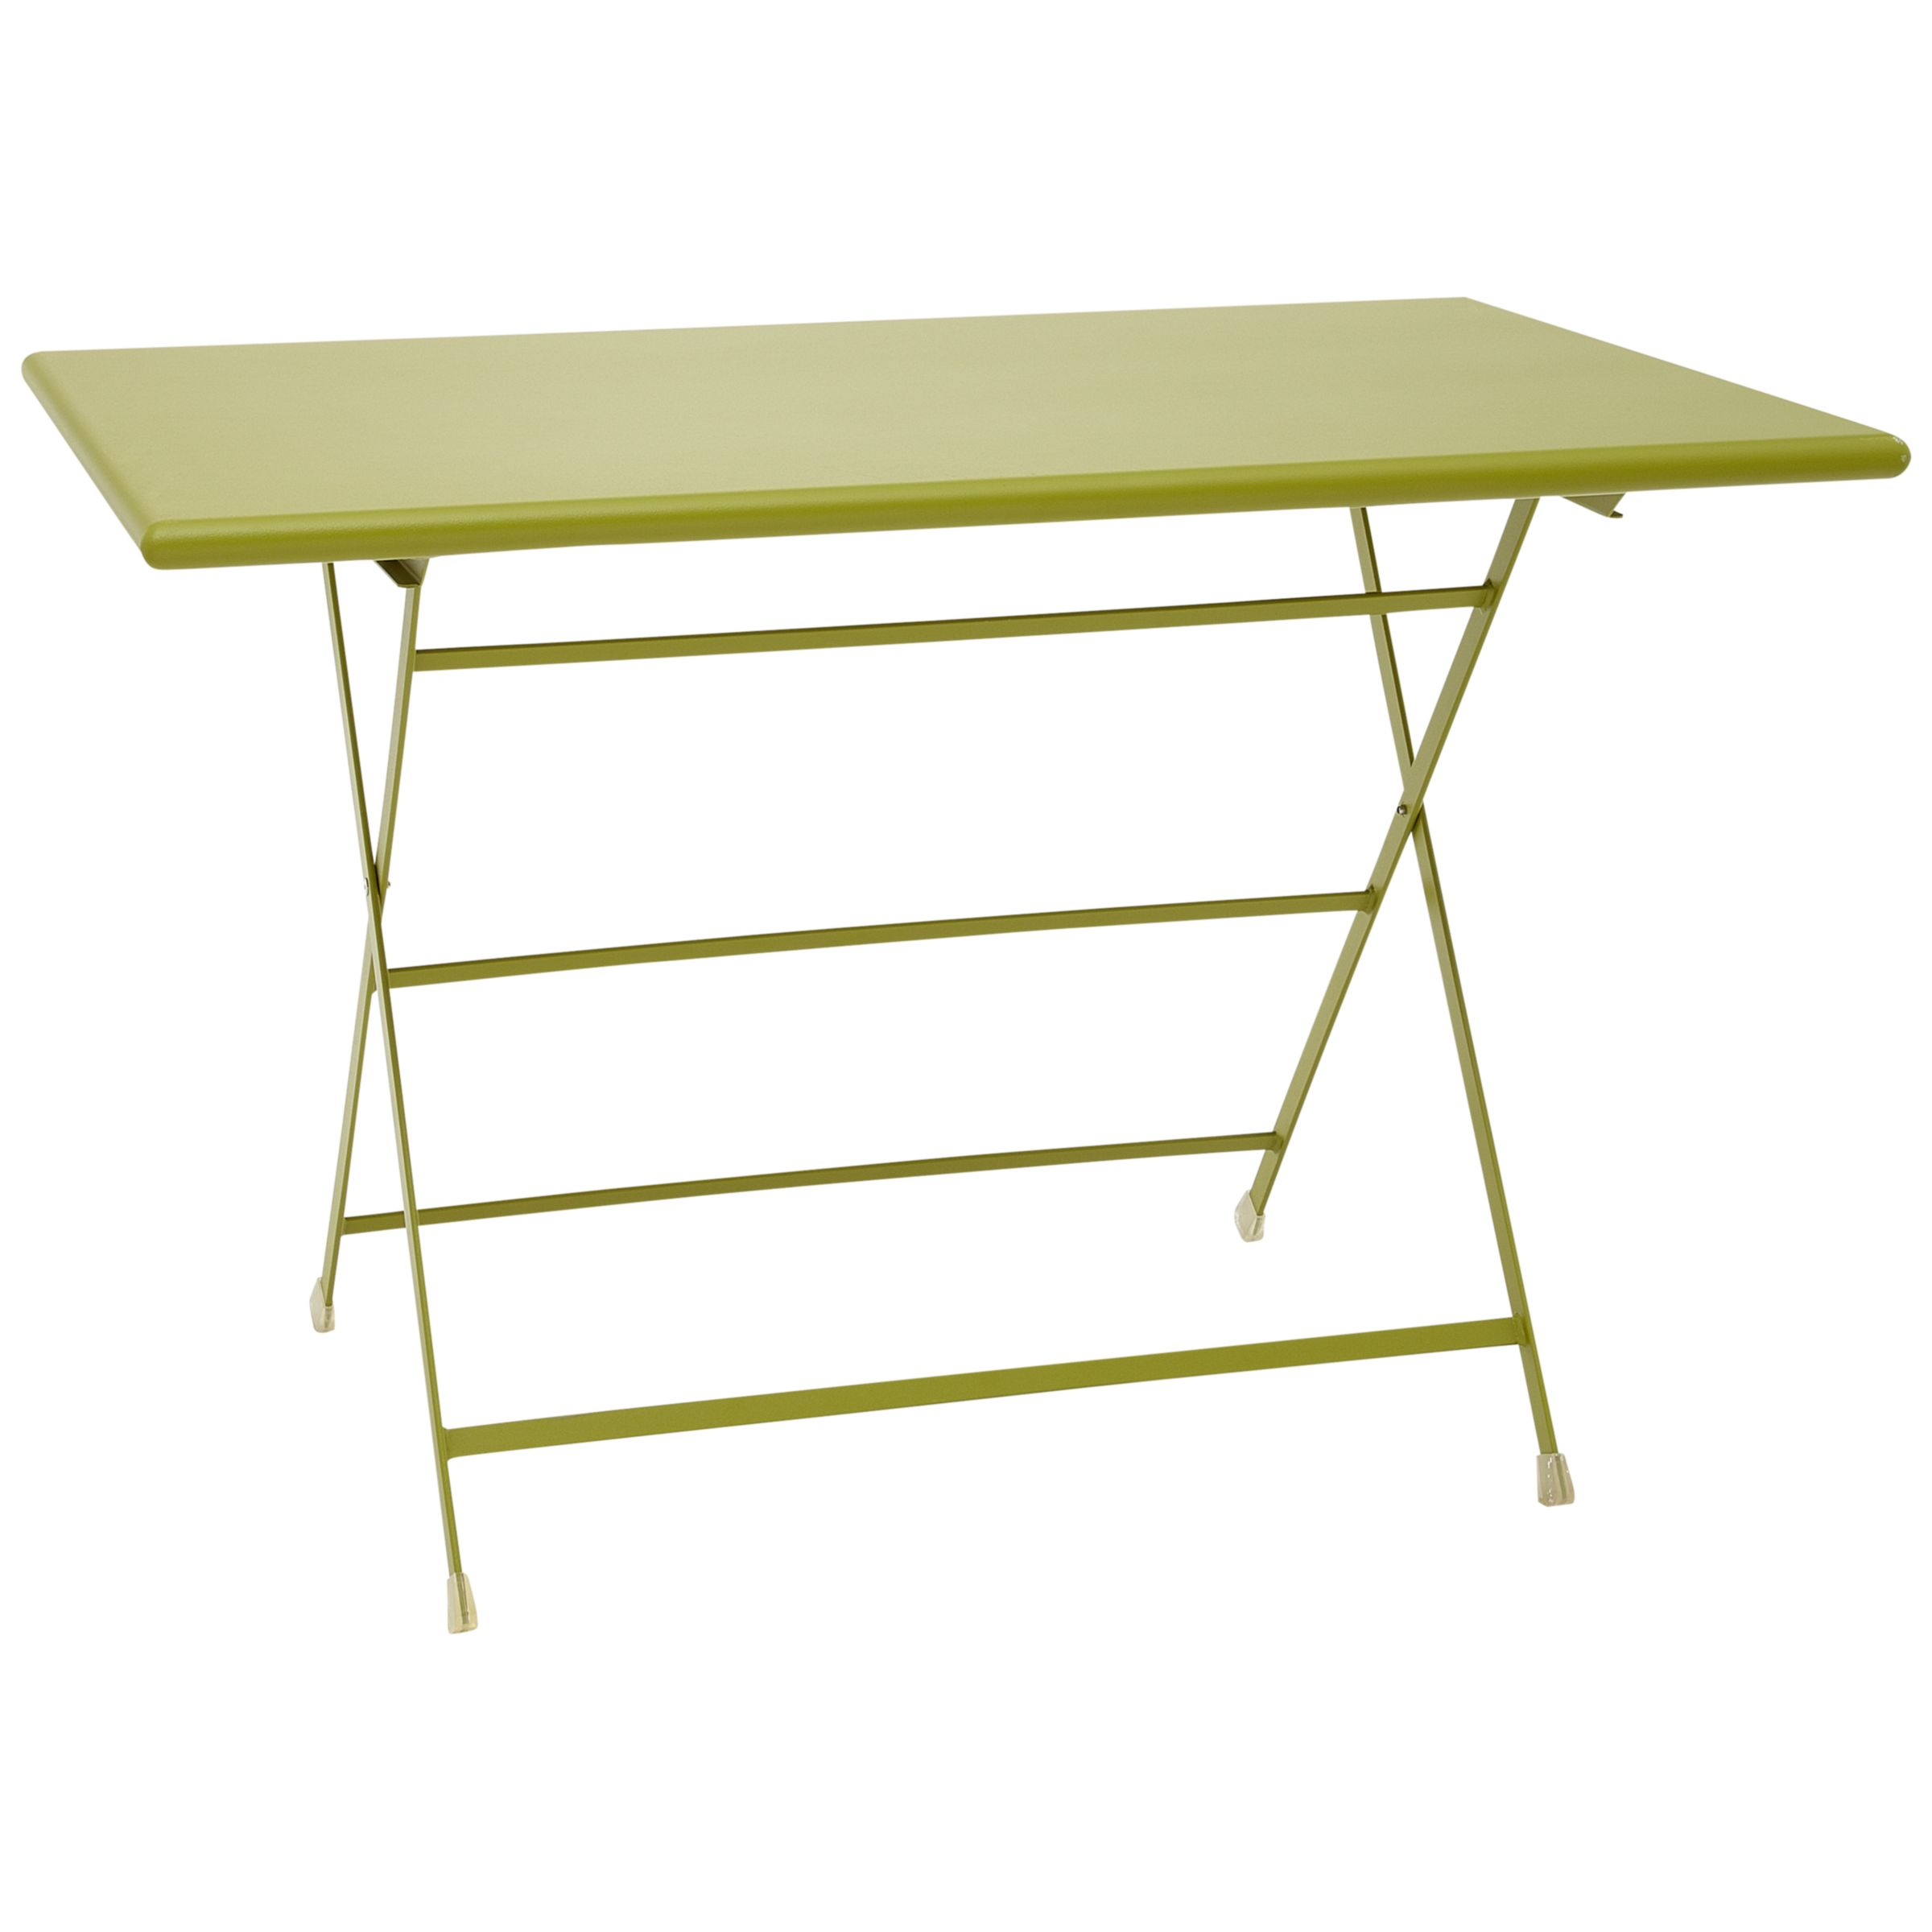 EMU Arc En Ciel Rectangular 4 Seater Outdoor Dining Tables, Green